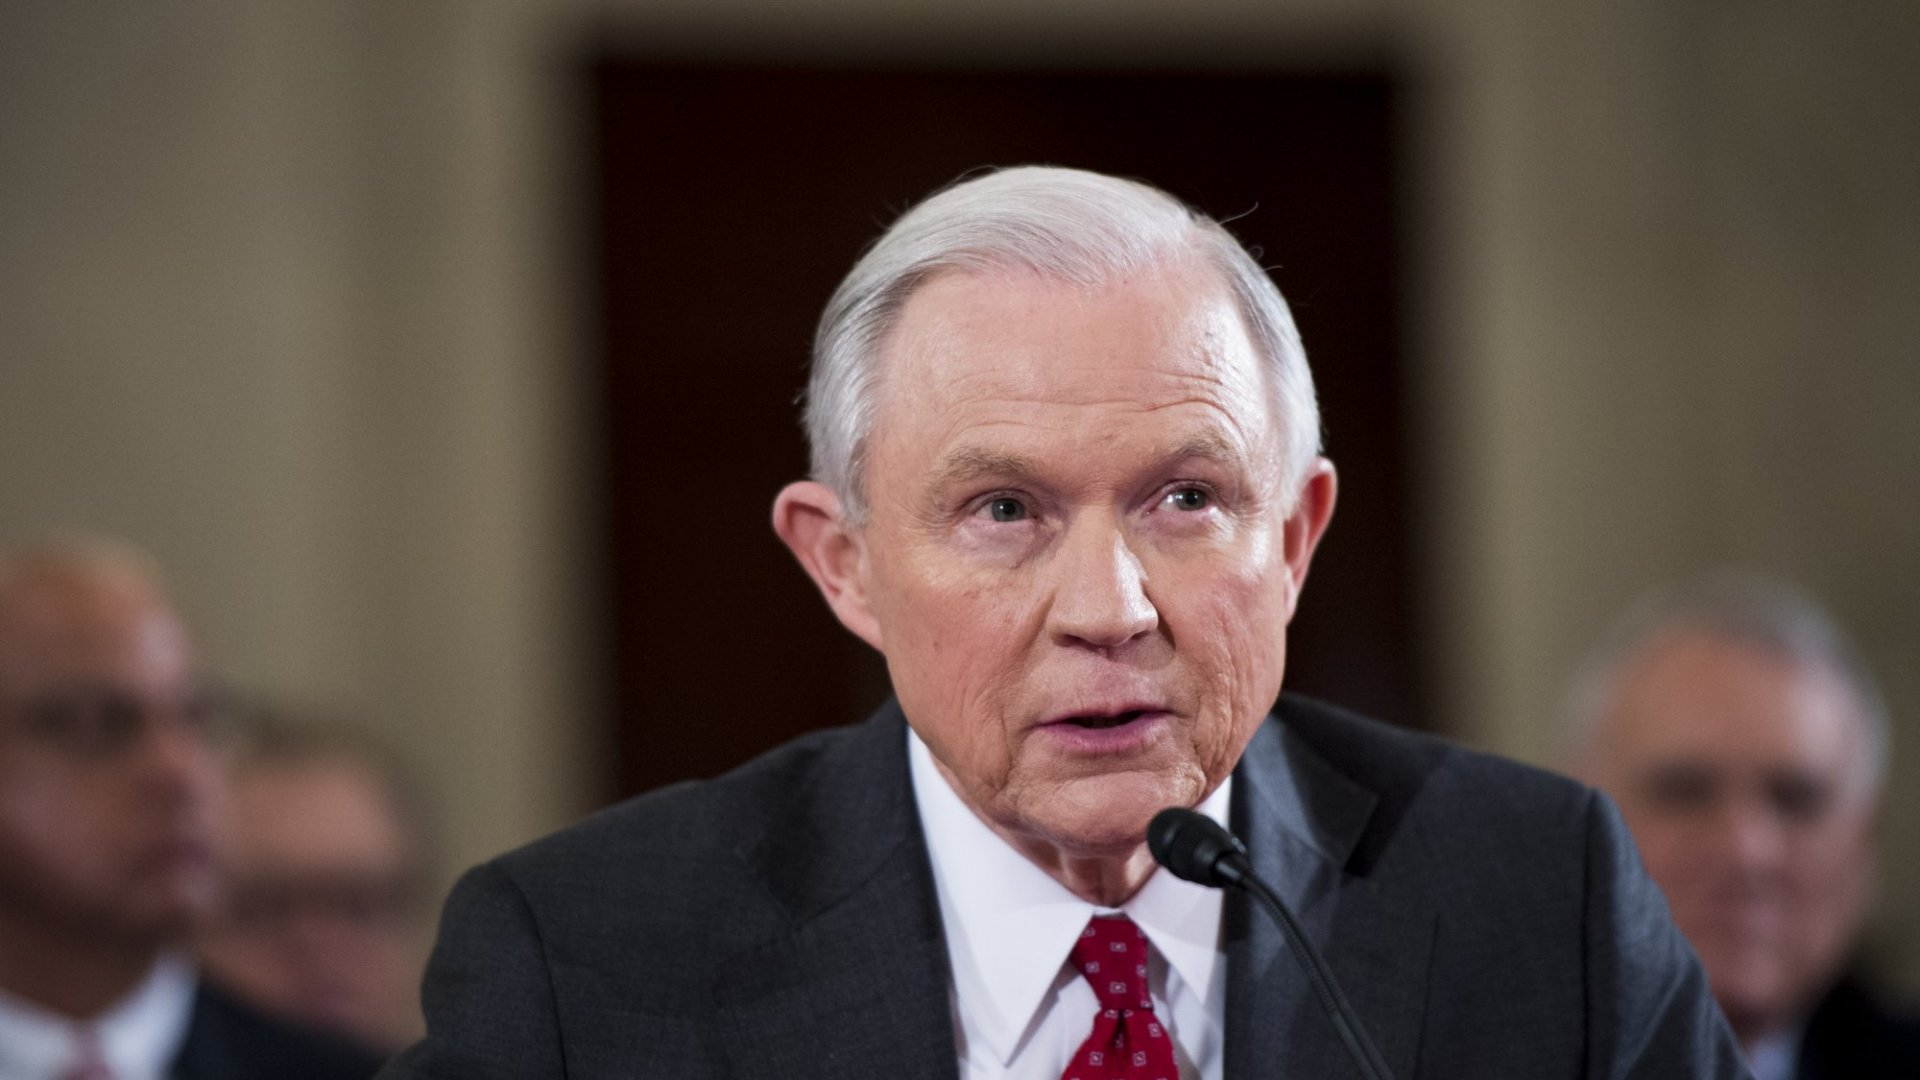 Marijuana Industry Sees Senator Sessions as Threat, But Hopes Trump's States' Rights Agenda Prevails